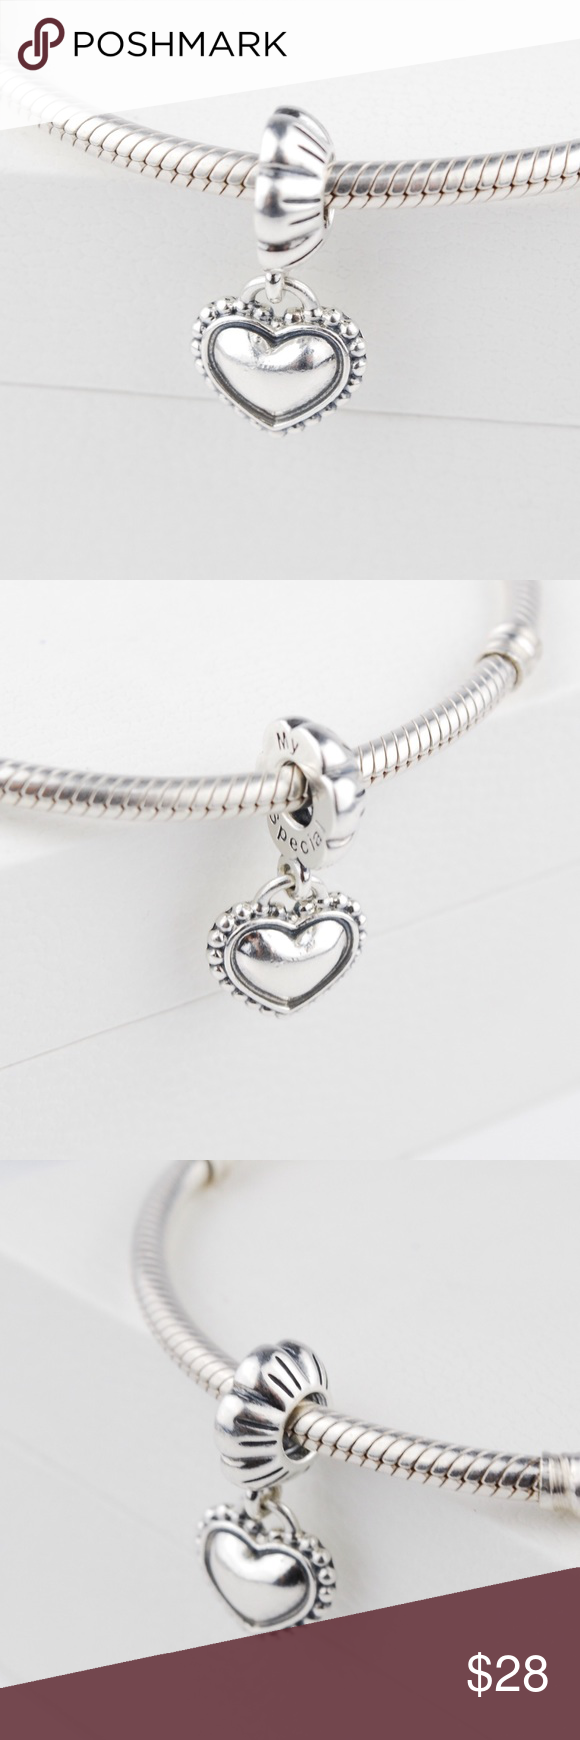 81ad145d2 Authentic PANDORA My Special Sister Heart Dangle One Authentic PANDORA  Sterling Silver My Special Sister Heart